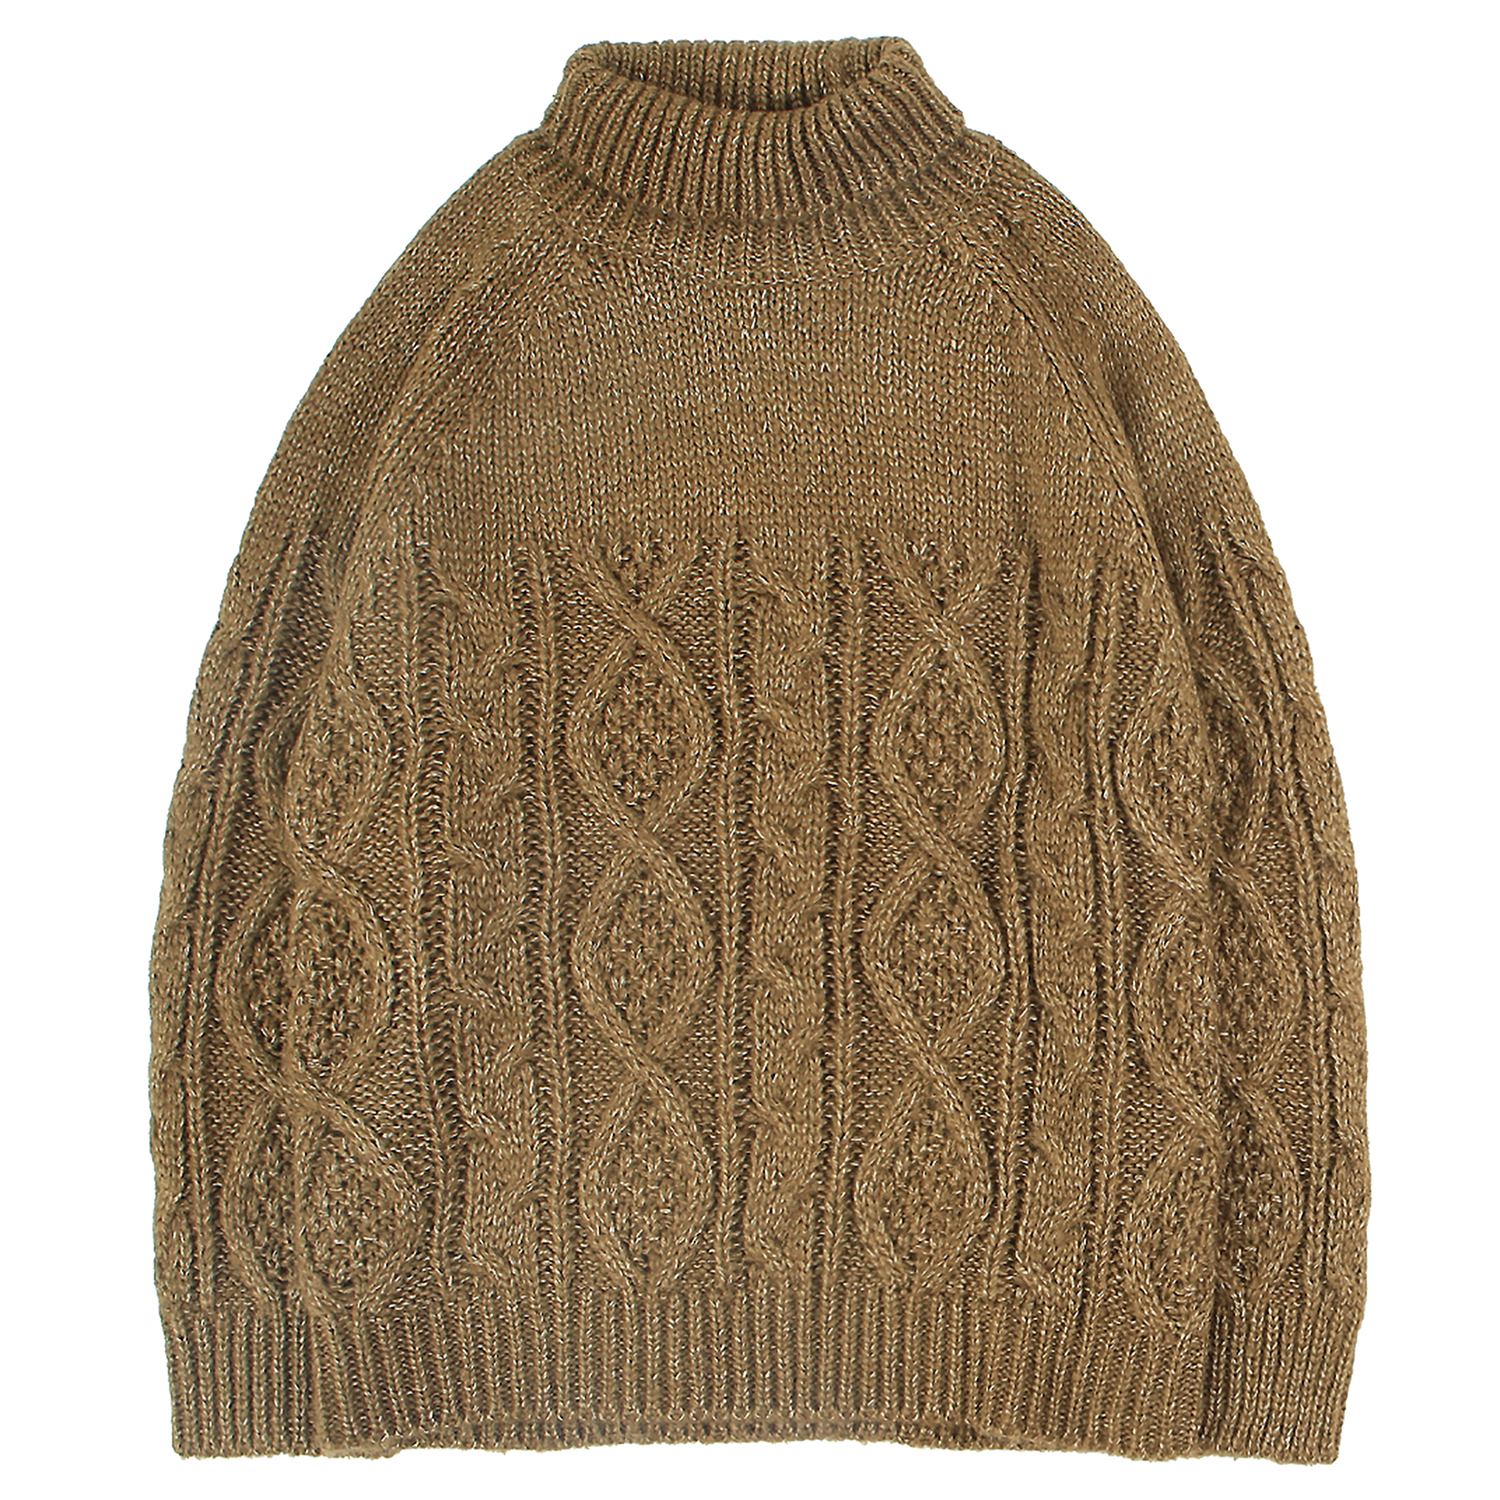 Men's Turtleneck Sweater Chunky Knitted Jumpers Warmth Pullover Casual Tops Classics For Young Boys Leisure Outdoor Solid Color